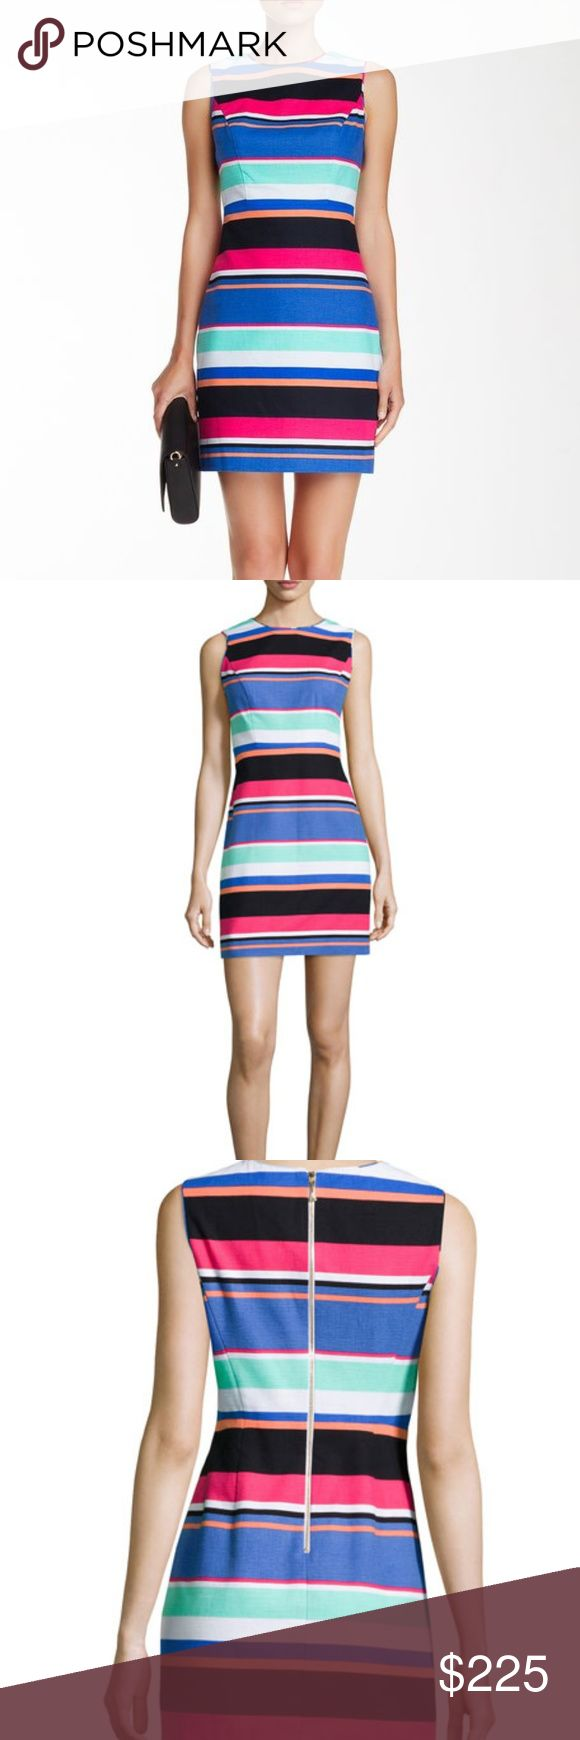 """NWT Kate Spade stripe cocktail dress size US 6 Bust: 35"""" Waist: 28"""" Hip: 35"""" Length: 33.75""""  New with tags.  No trades.  Perfect for spring/summer, work and parties. kate spade Dresses Mini"""